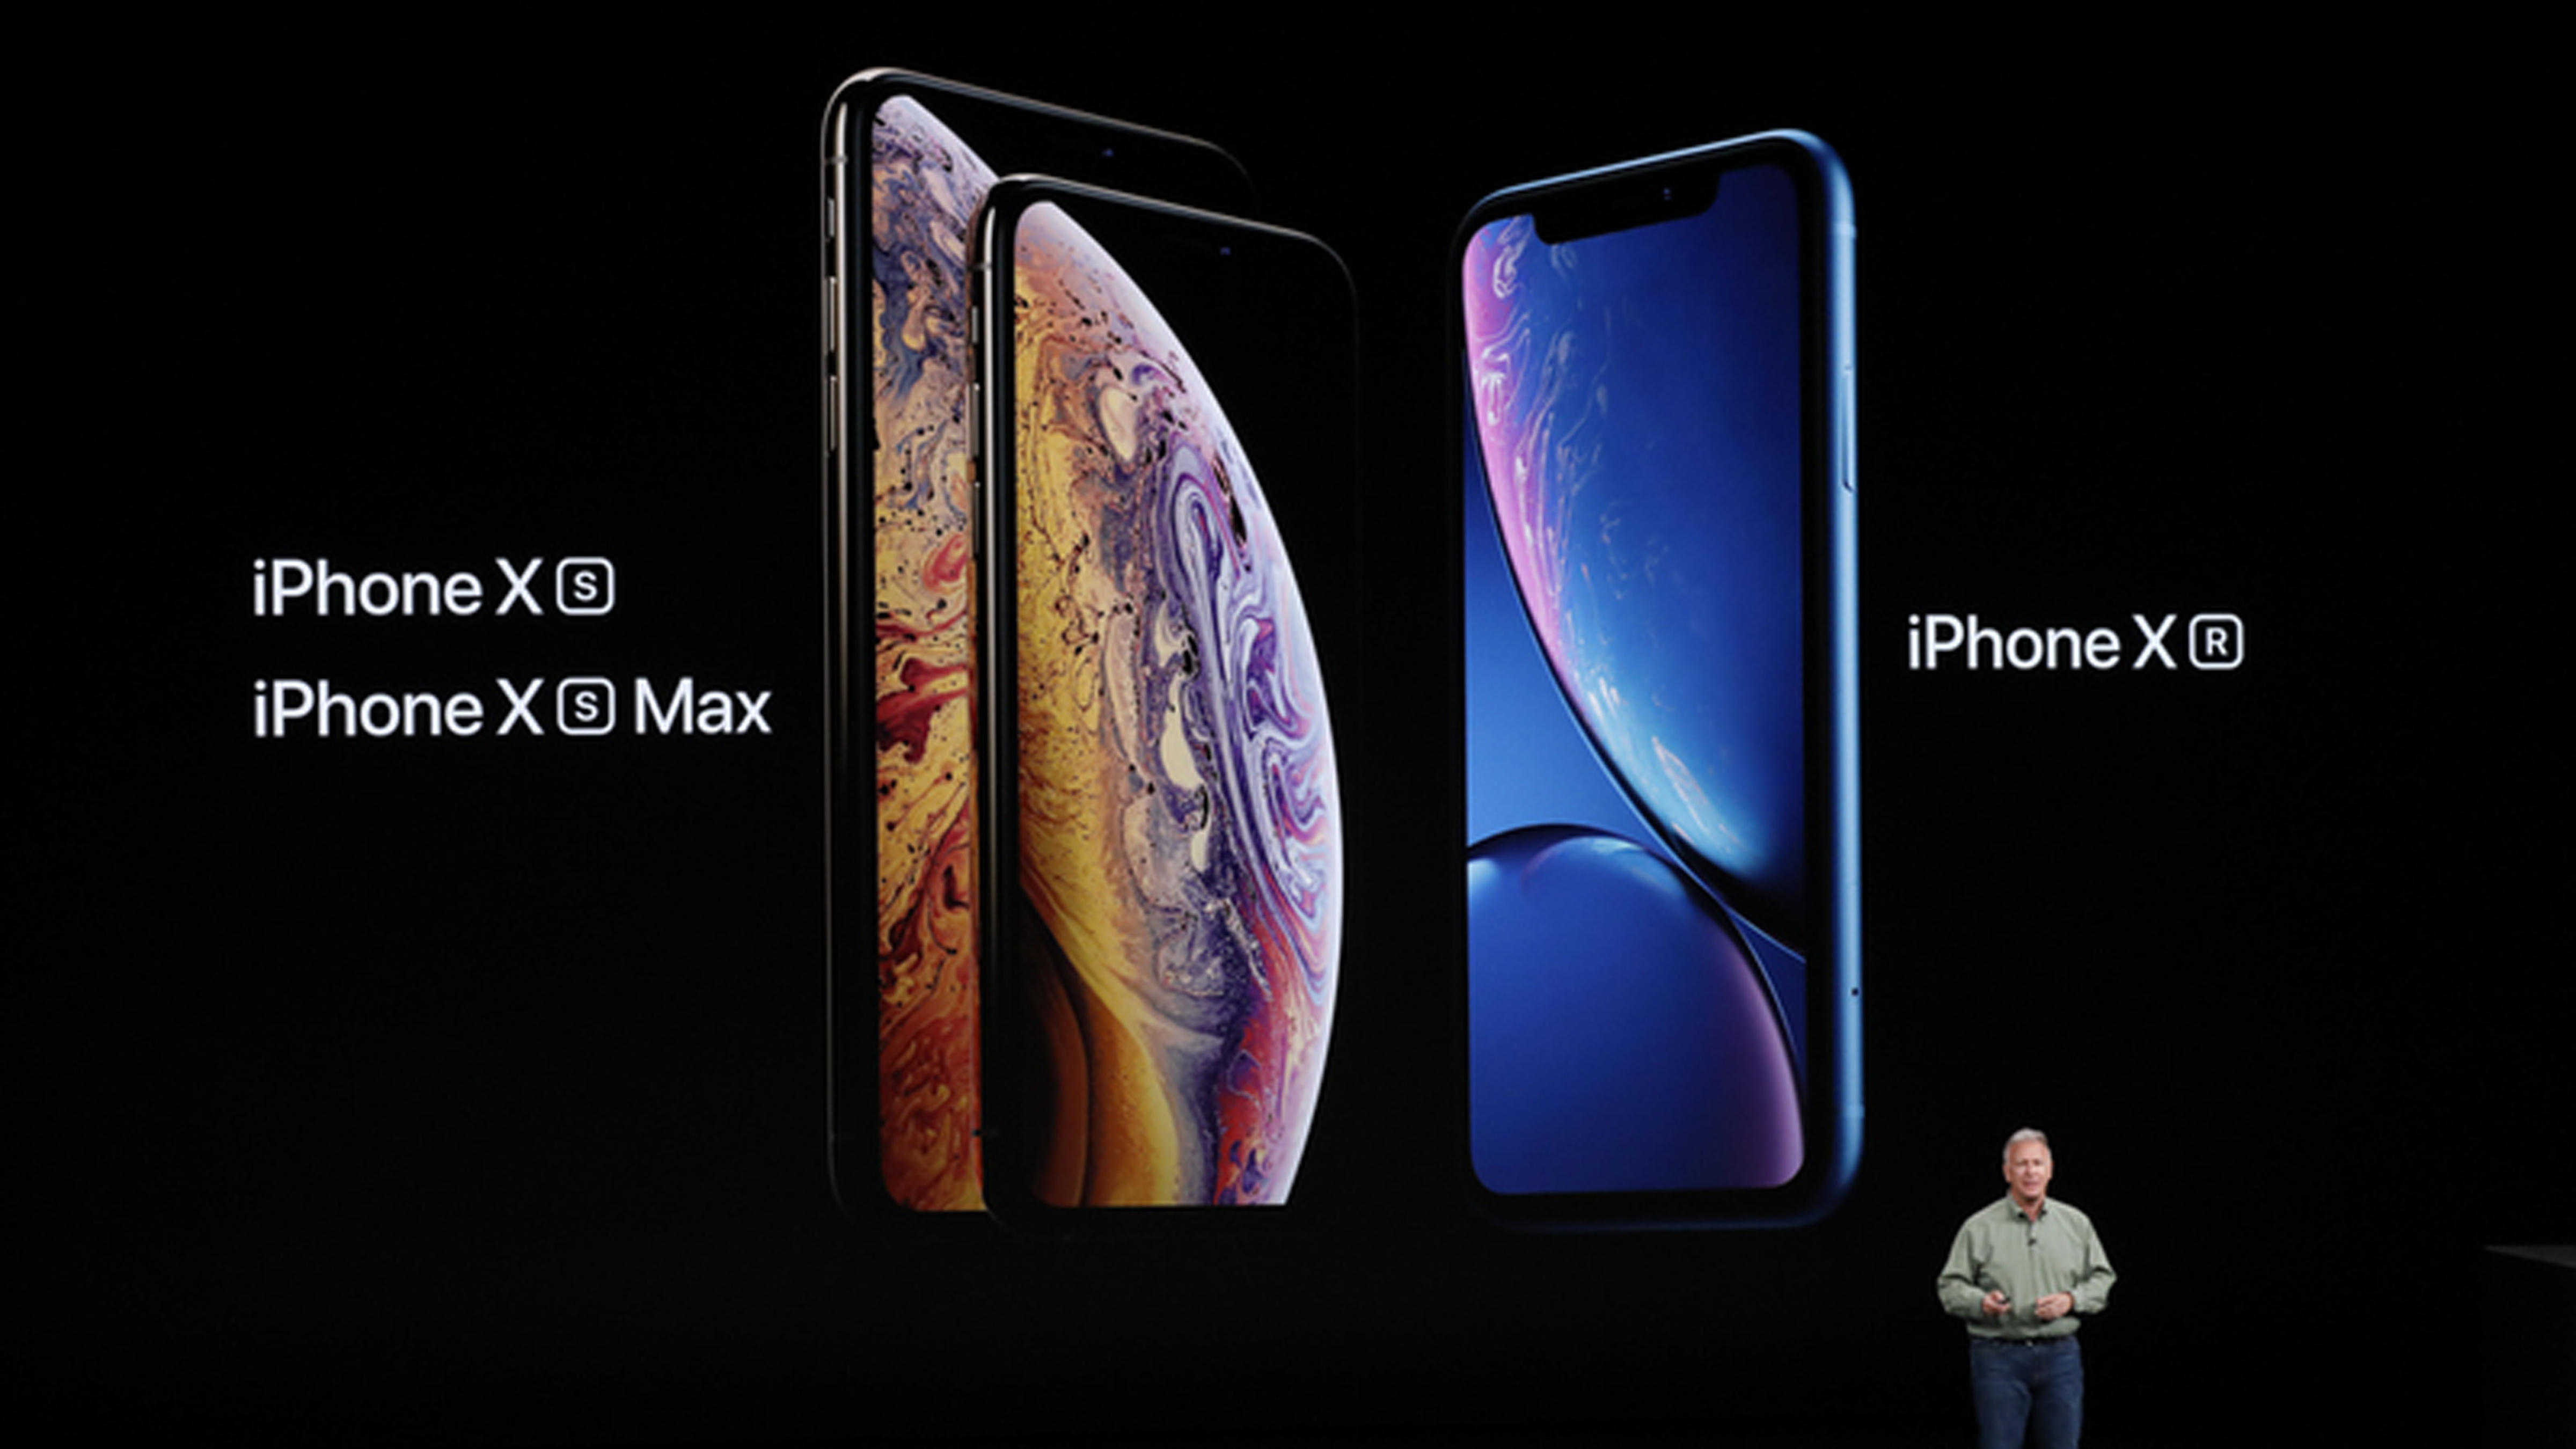 Apple Announcements Sept 12 2018 iPhone XS Max and iPhone XR